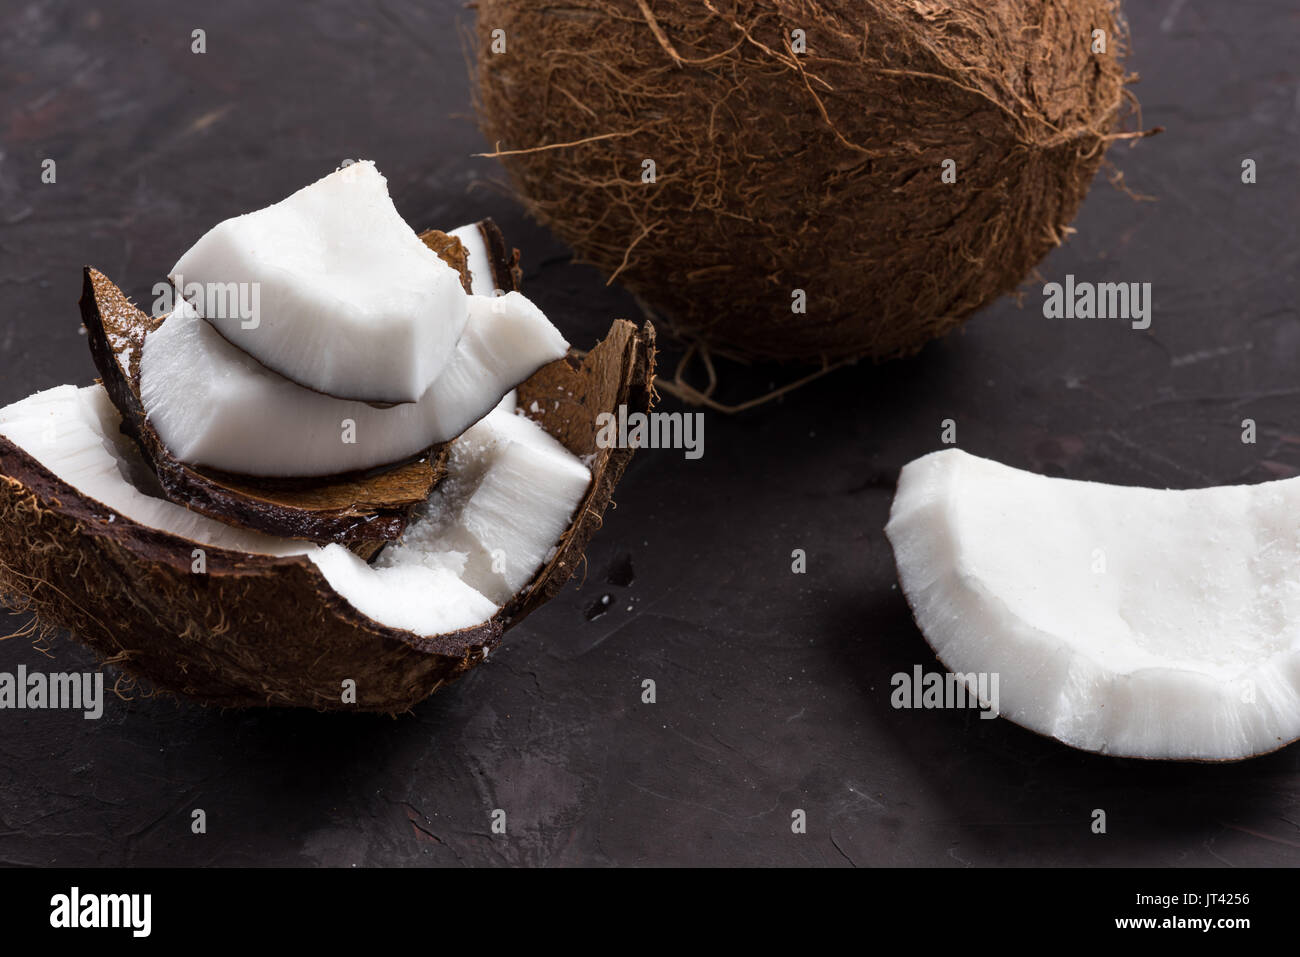 close up of pieces of ripe tropical coconut on dark background - Stock Image